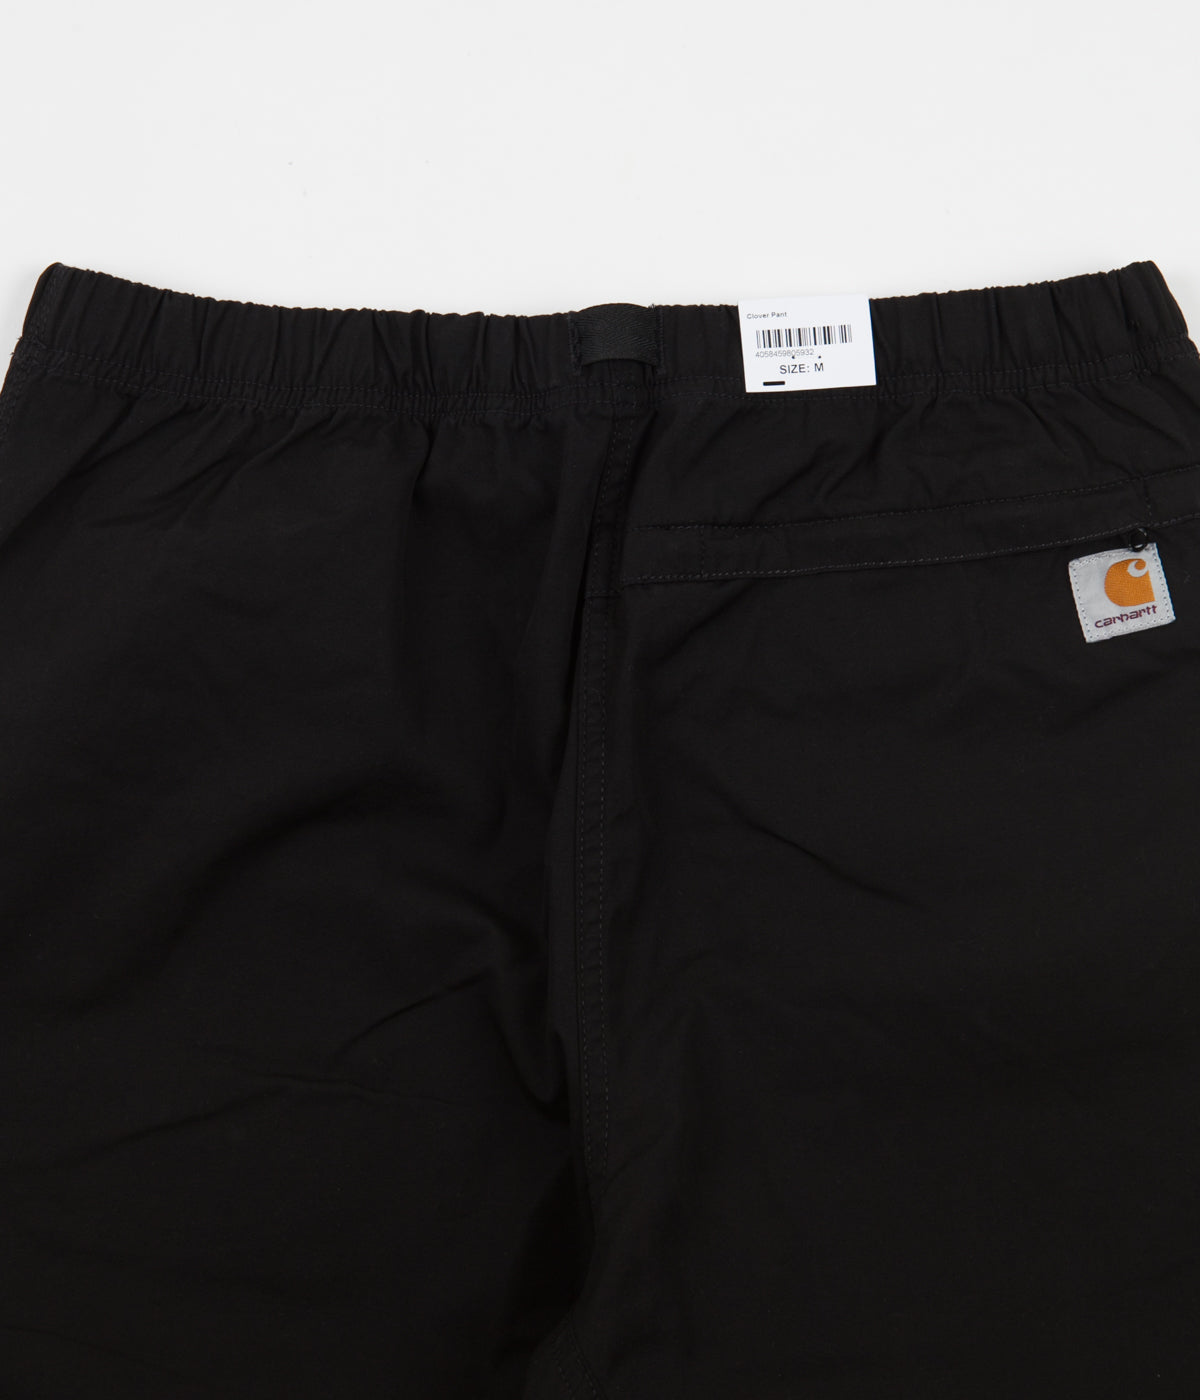 Carhartt Clover Pants - Black